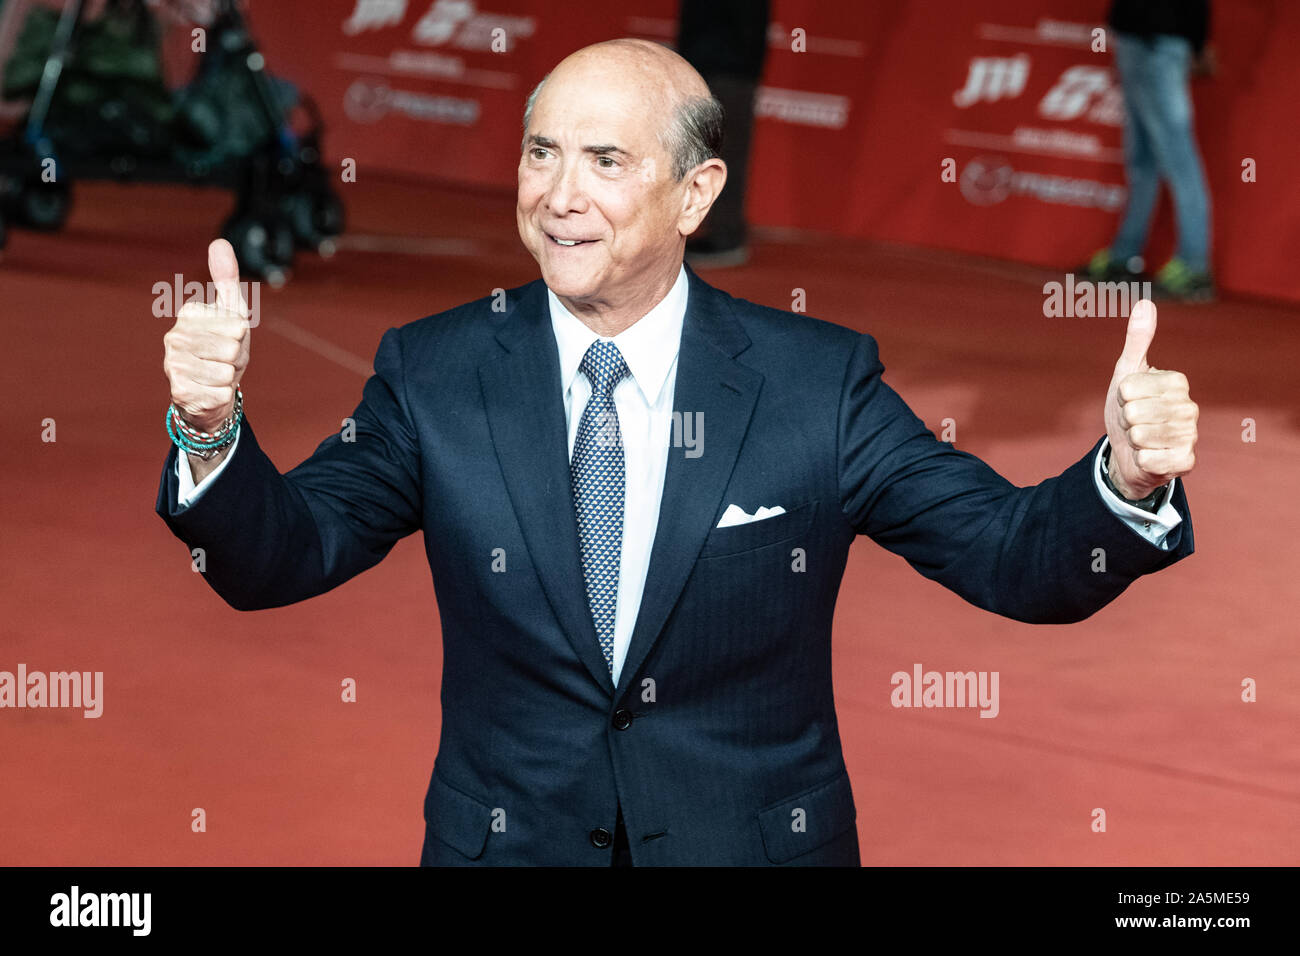 "US ambassador to Italy, Lewis M. Eisenberg gestures as he arrives for the screening of the film ""The Irishman"" during the 14th Rome Film Festival. Stock Photo"